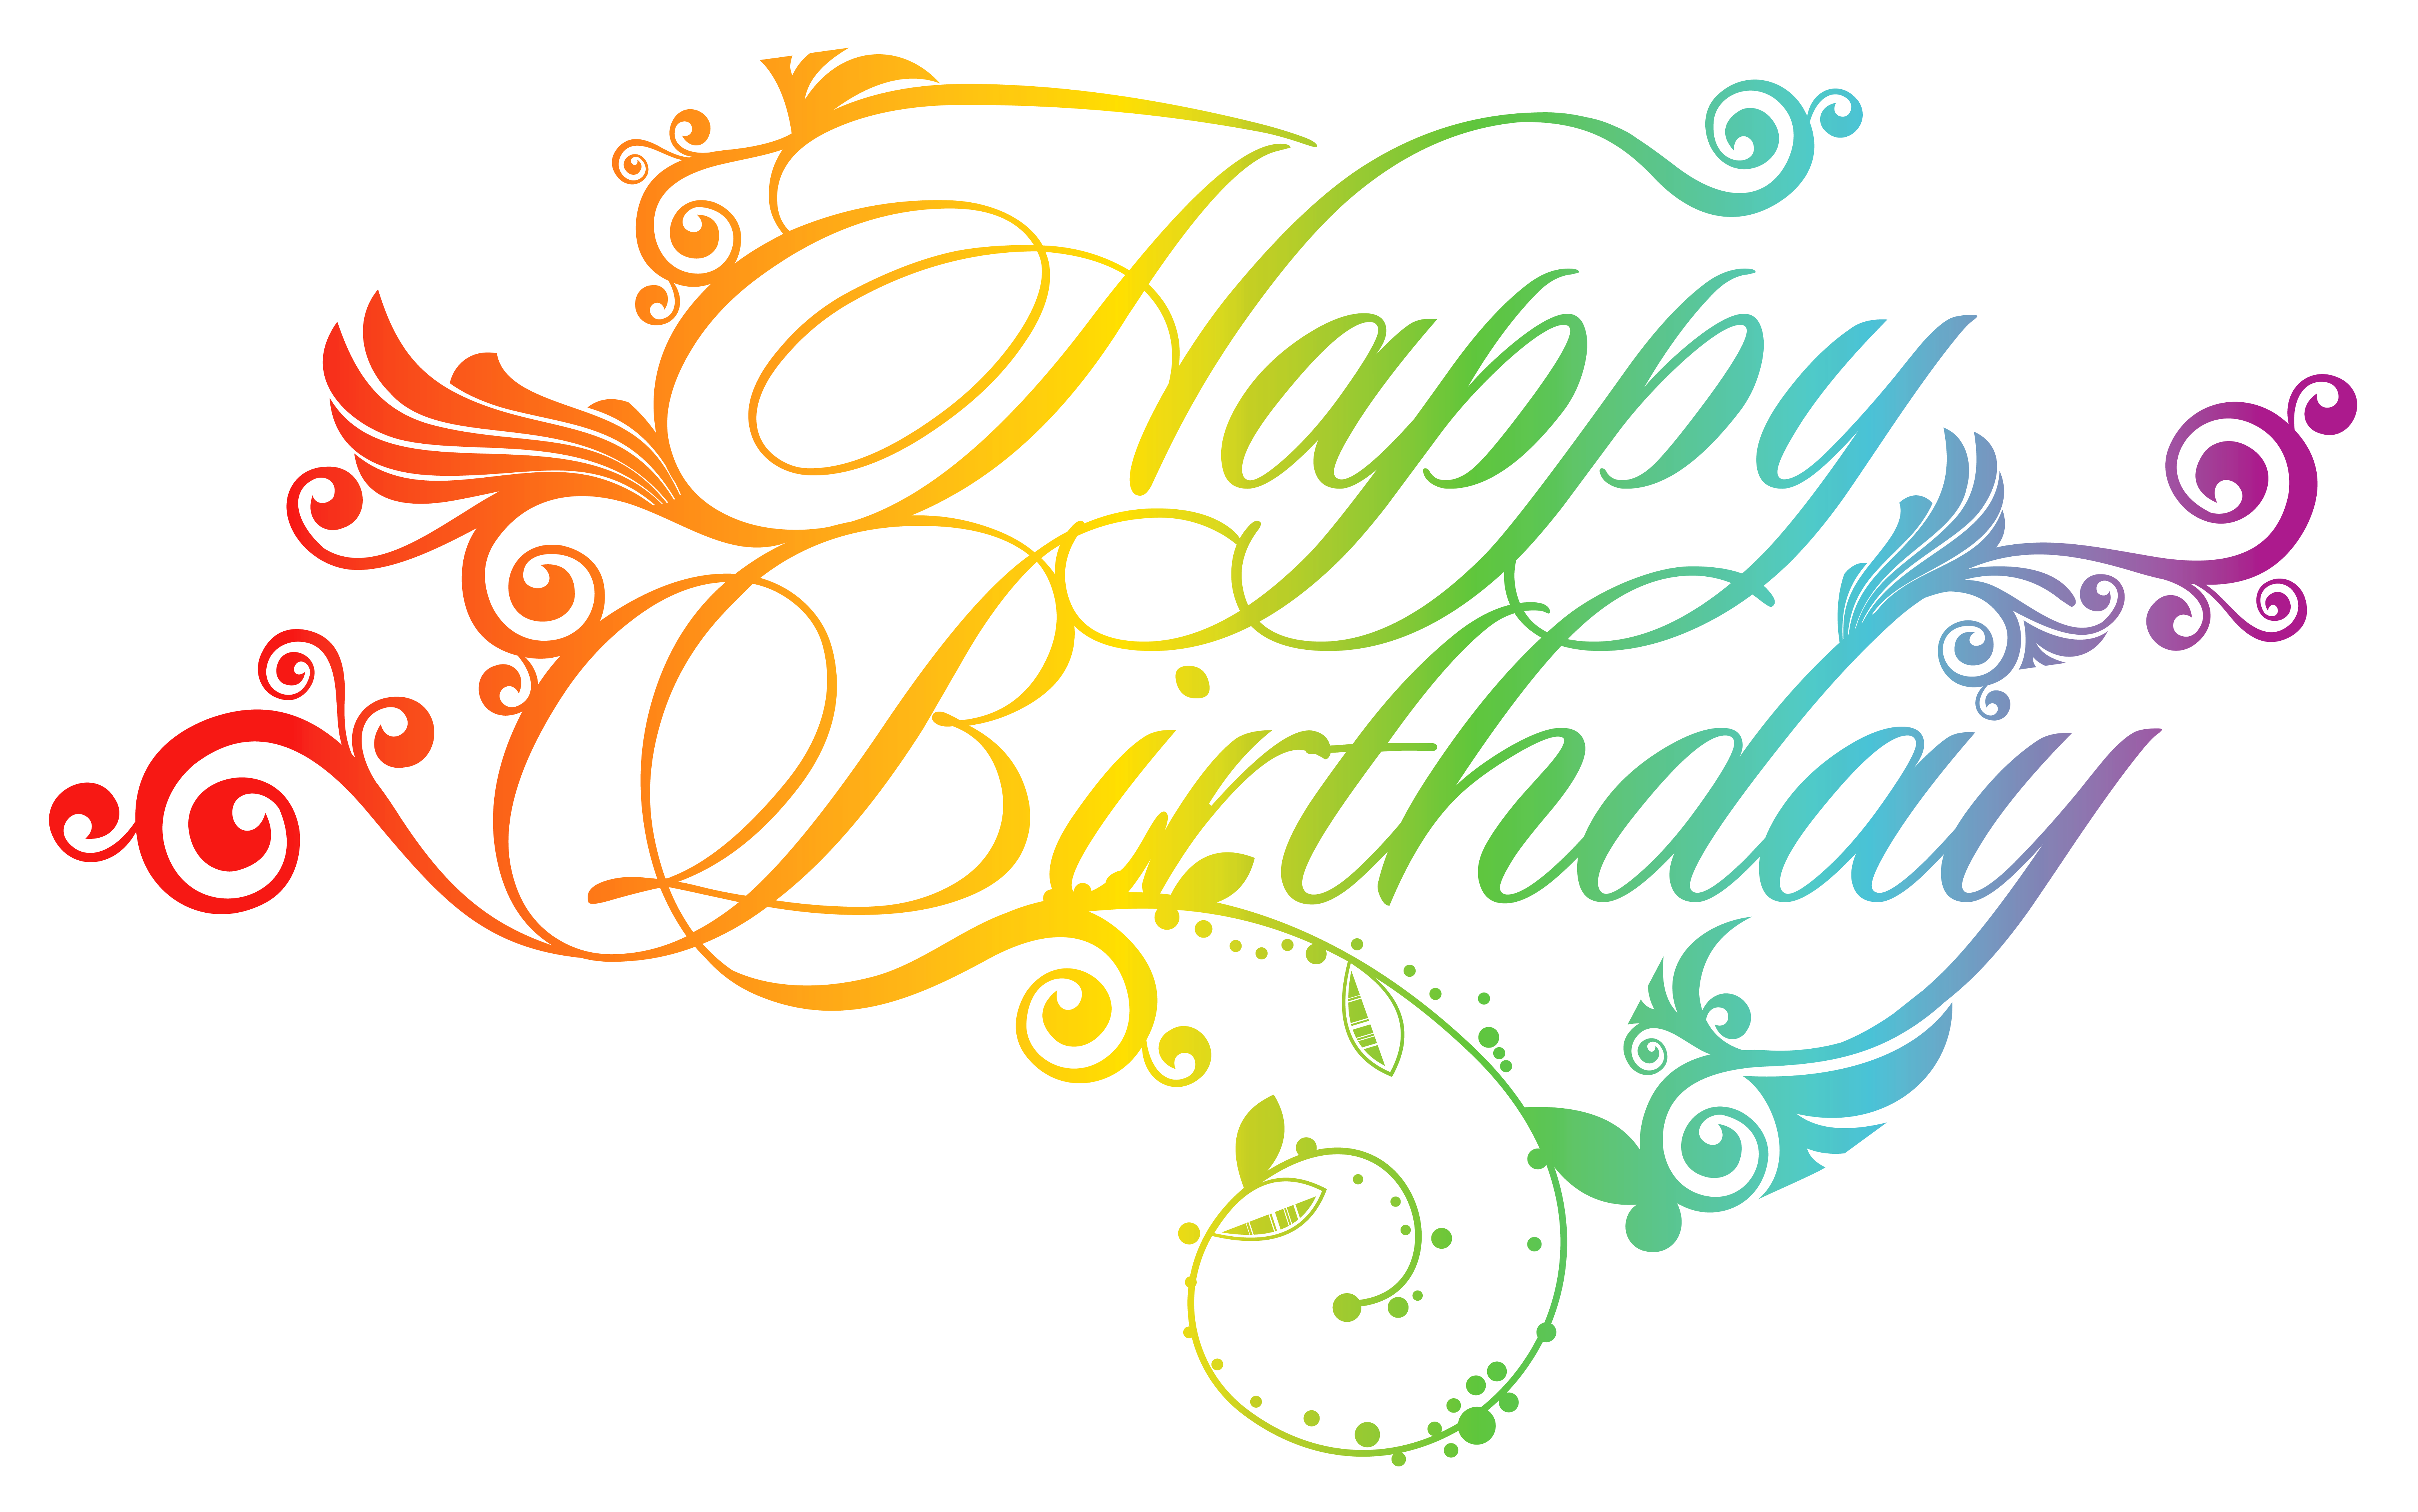 Colorful happy clipart picture. Birthday png images vector transparent library